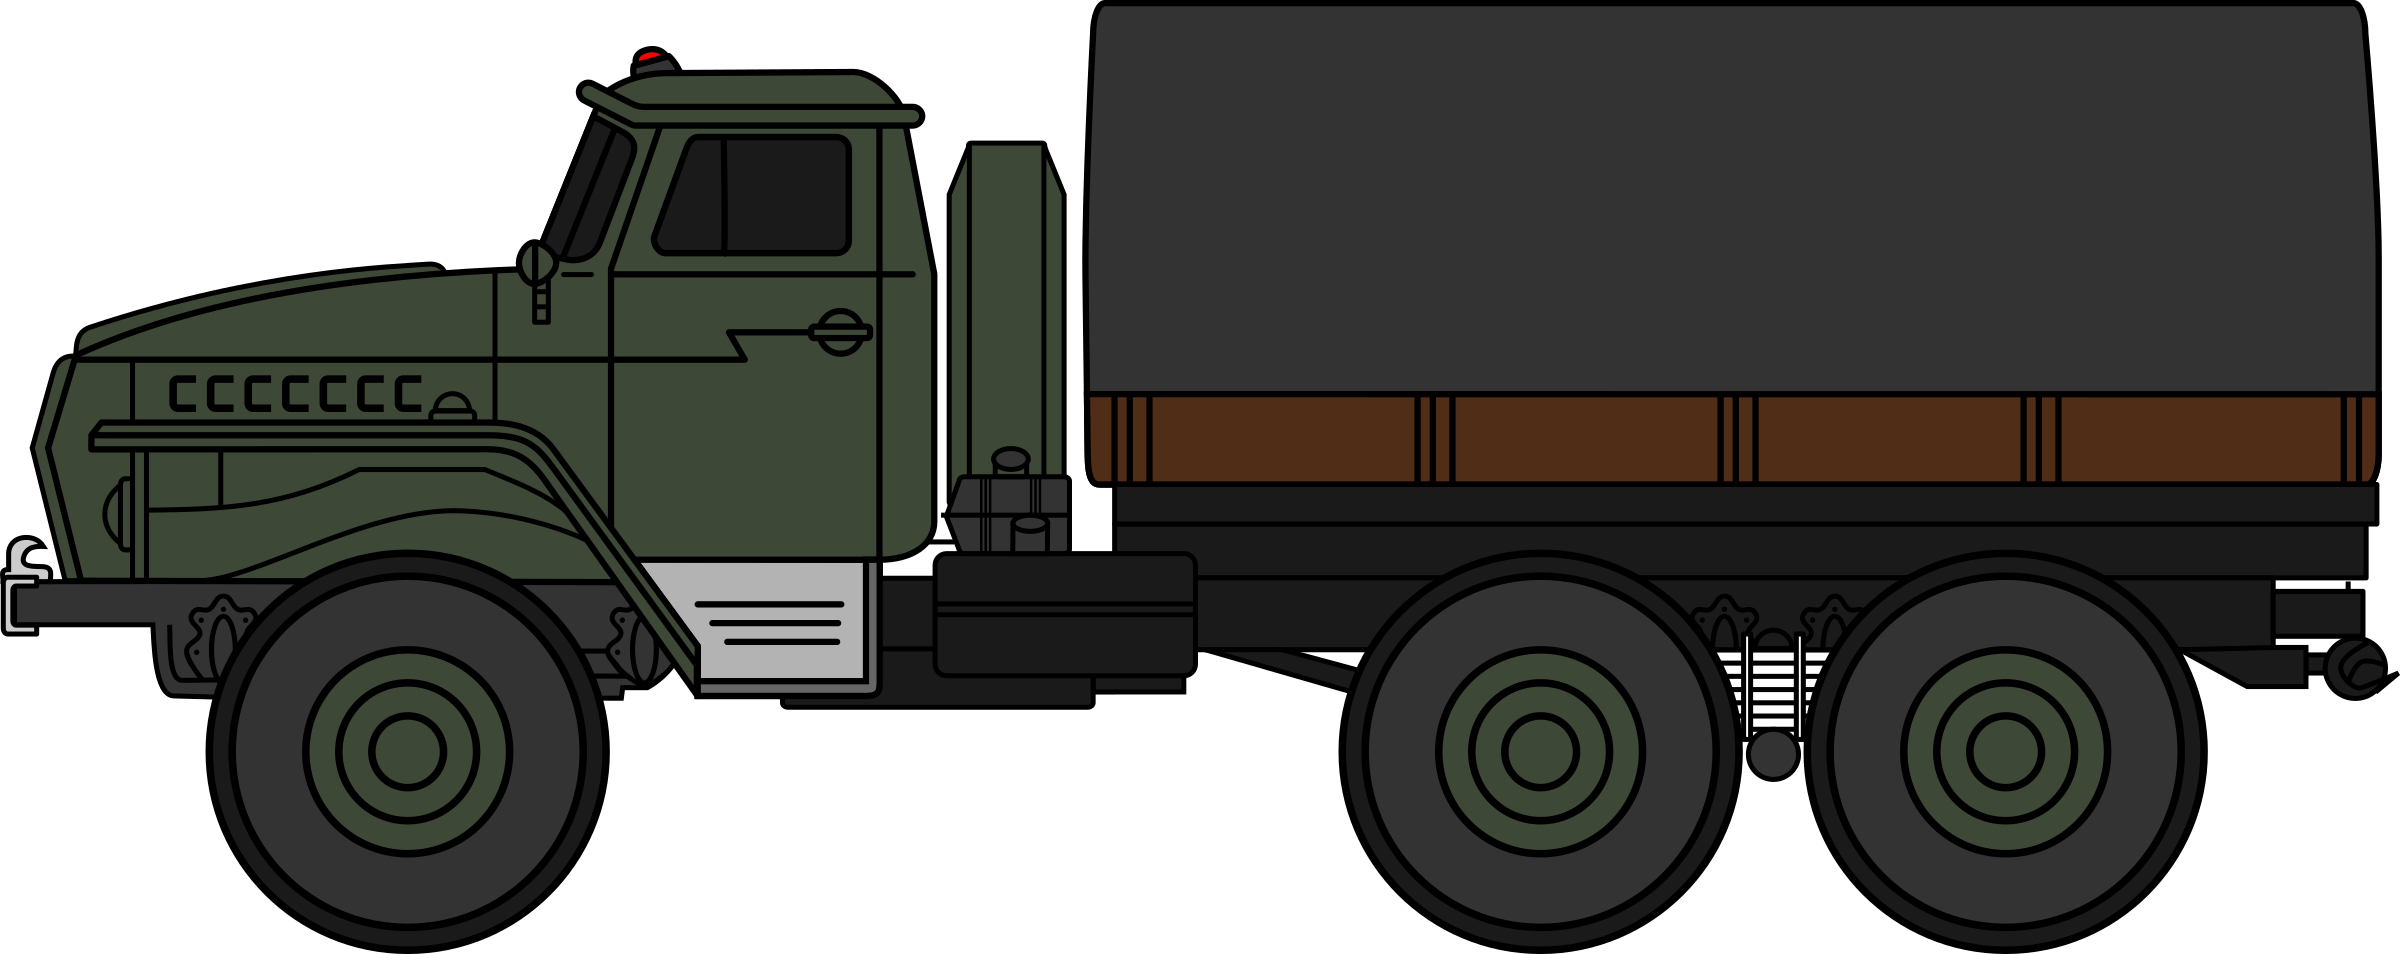 jpg library library Military vehicle free collection. Army clipart images.